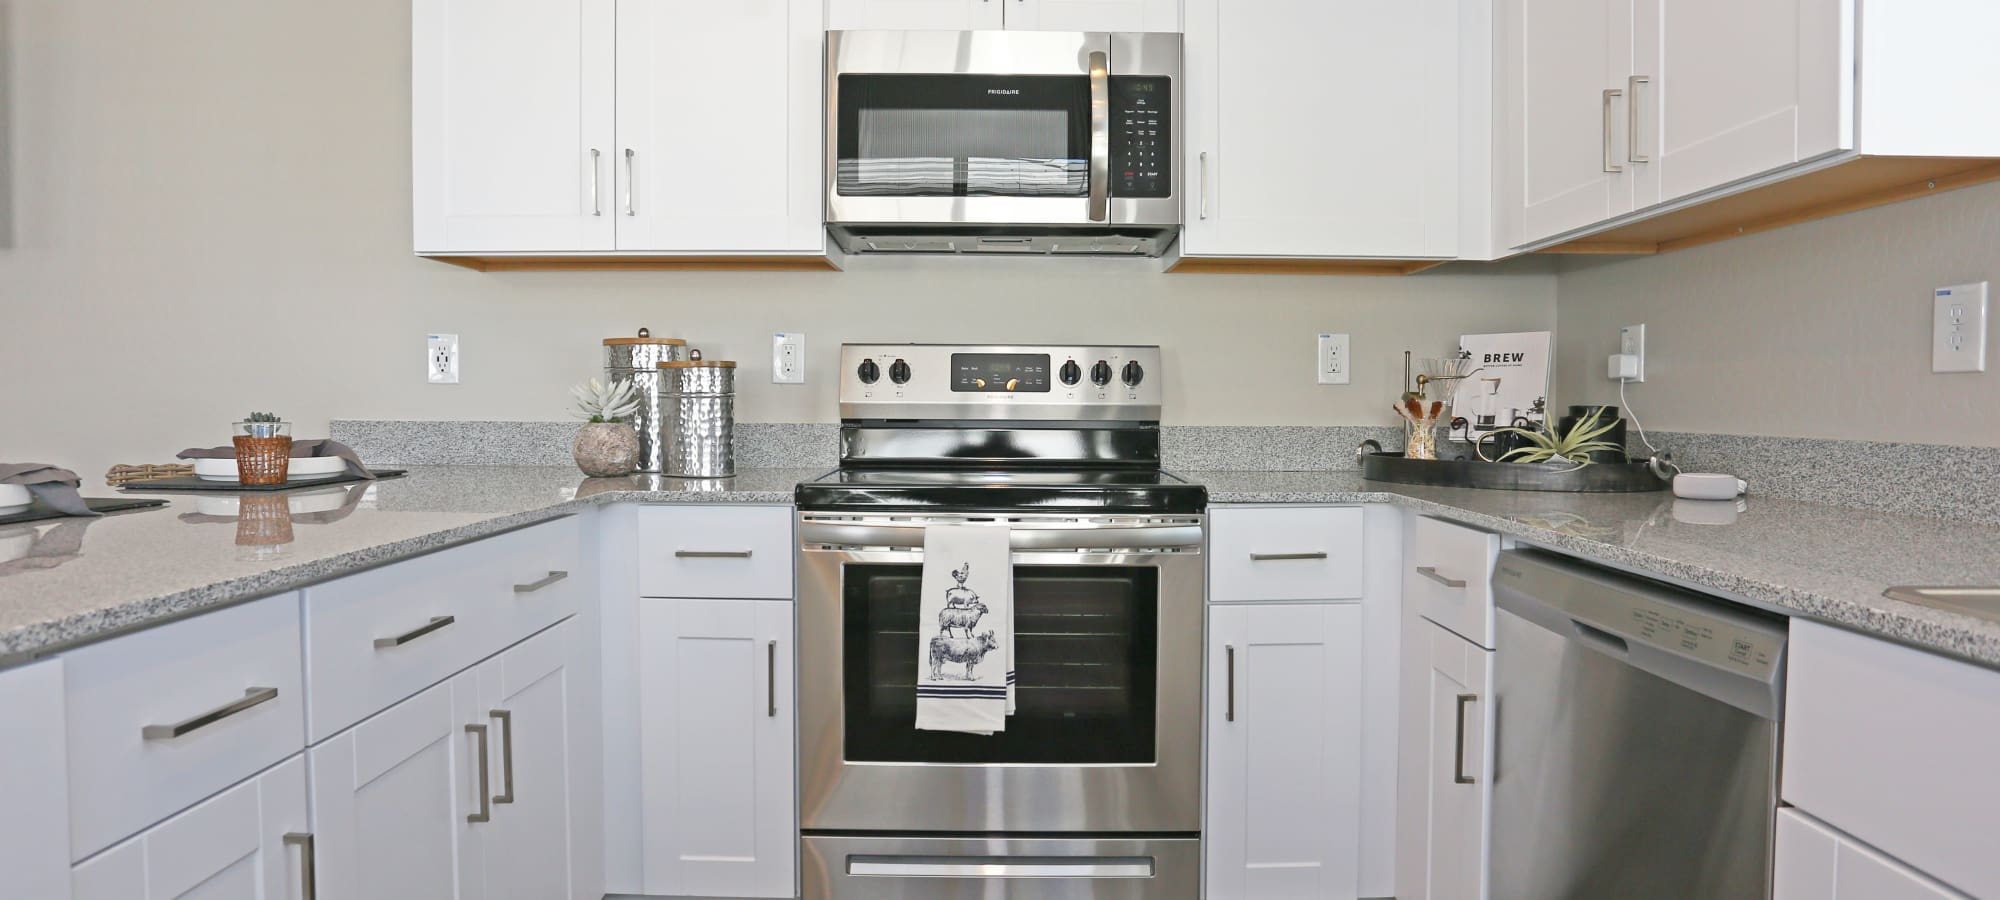 Stainless-steel appliances in model home's kitchen at Christopher Todd Communities At Marley Park in Surprise, Arizona